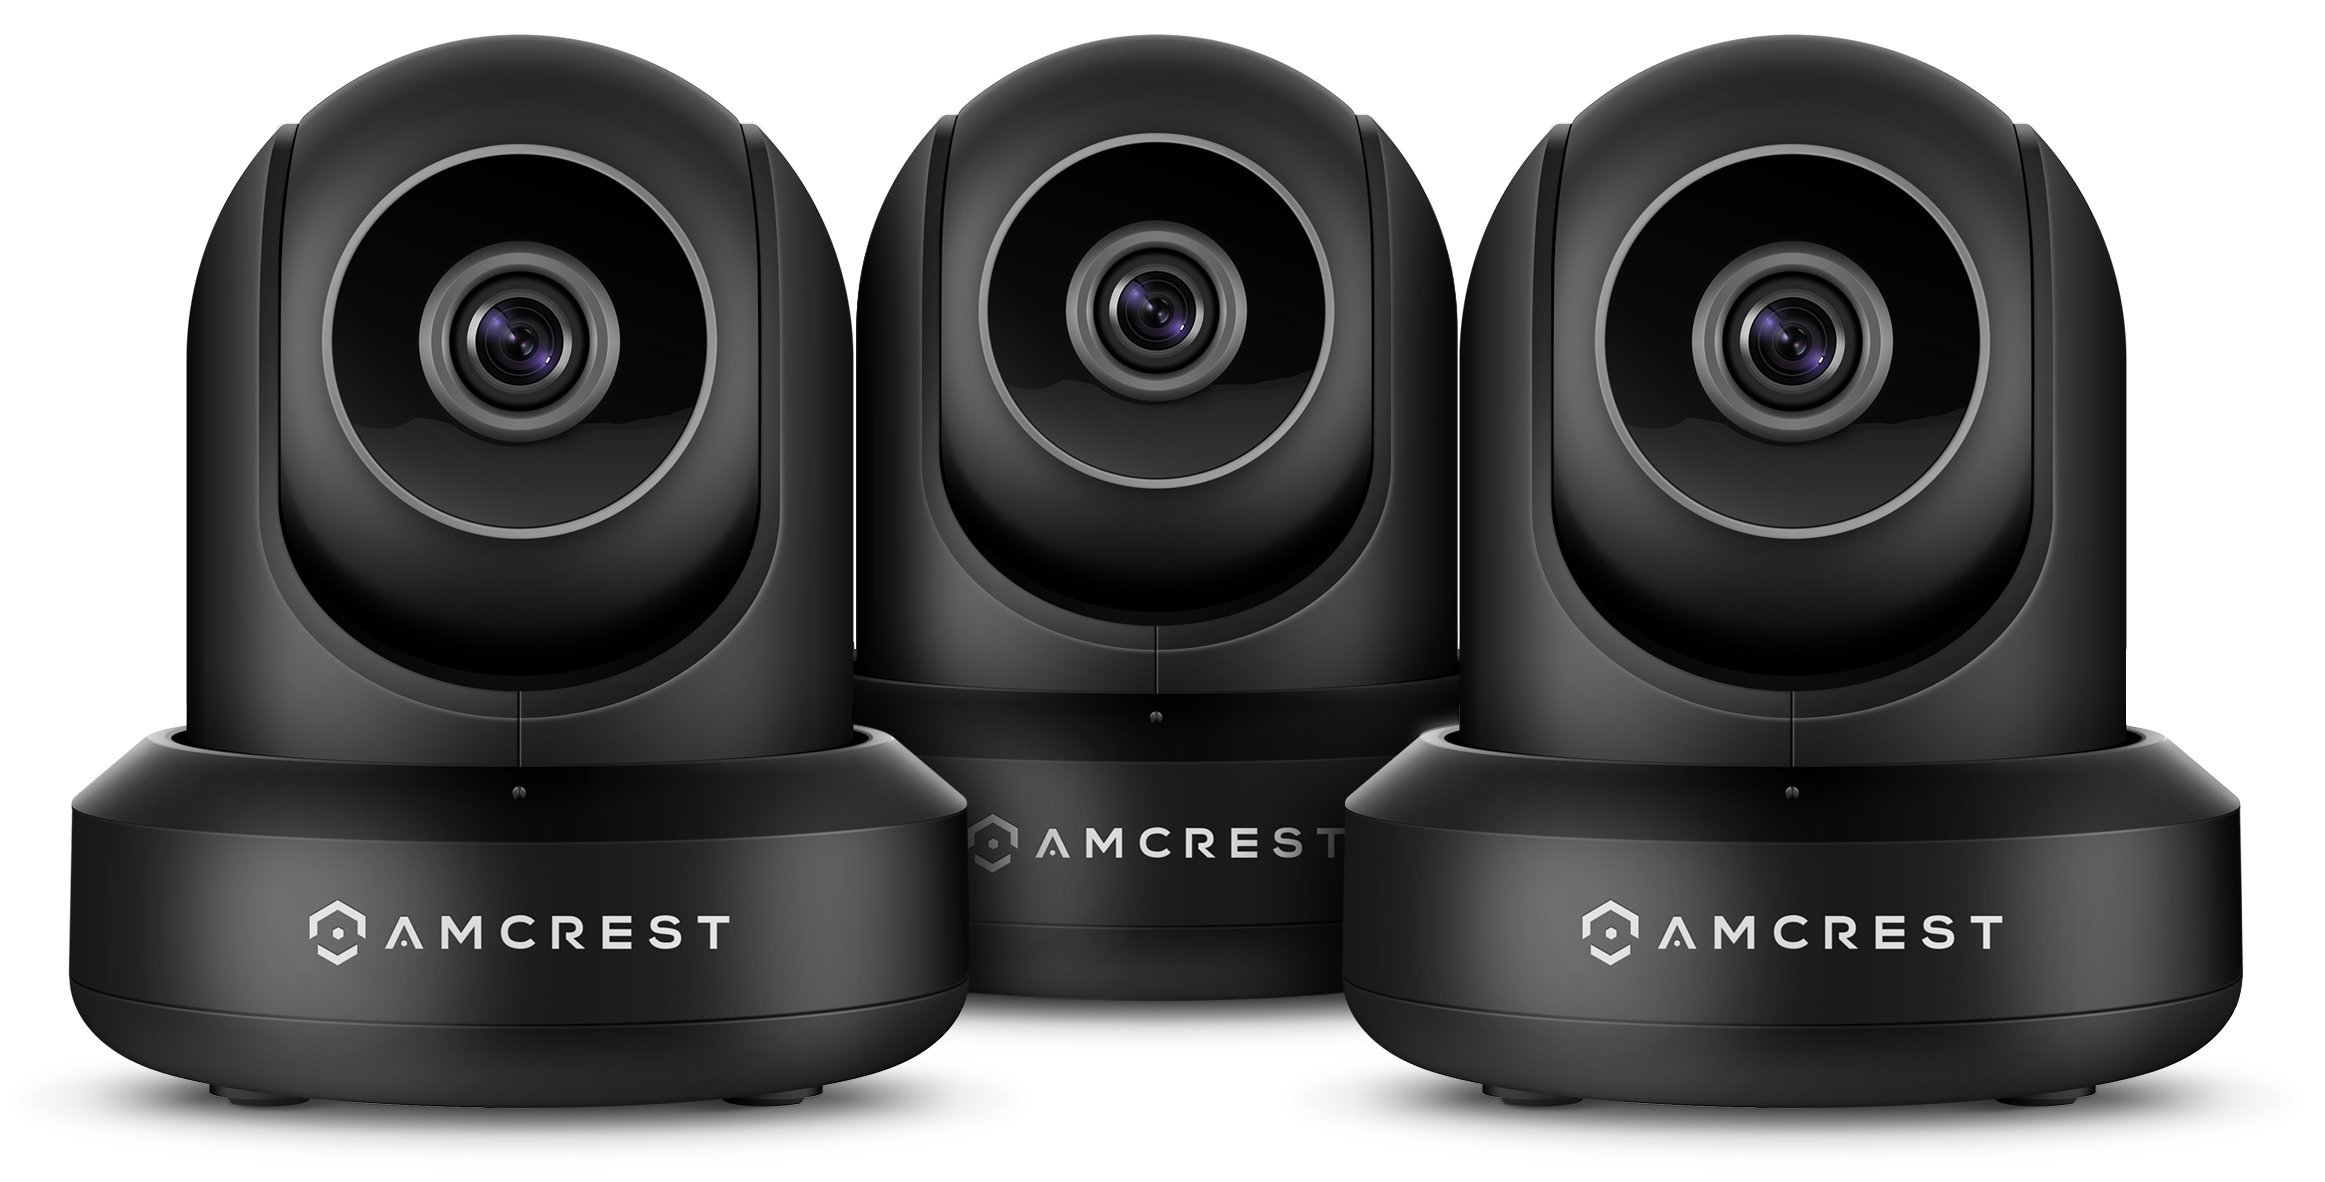 3-Pack Amcrest ProHD 1080P WiFi/Wireless IP SecurityCameraPan/Tilt, 2-Way Audio, Optional Cloud Recording, Full HD 1080P 2MP, Super Wide 90° Viewing Angle, Night Vision, IP2M-841 (Black)